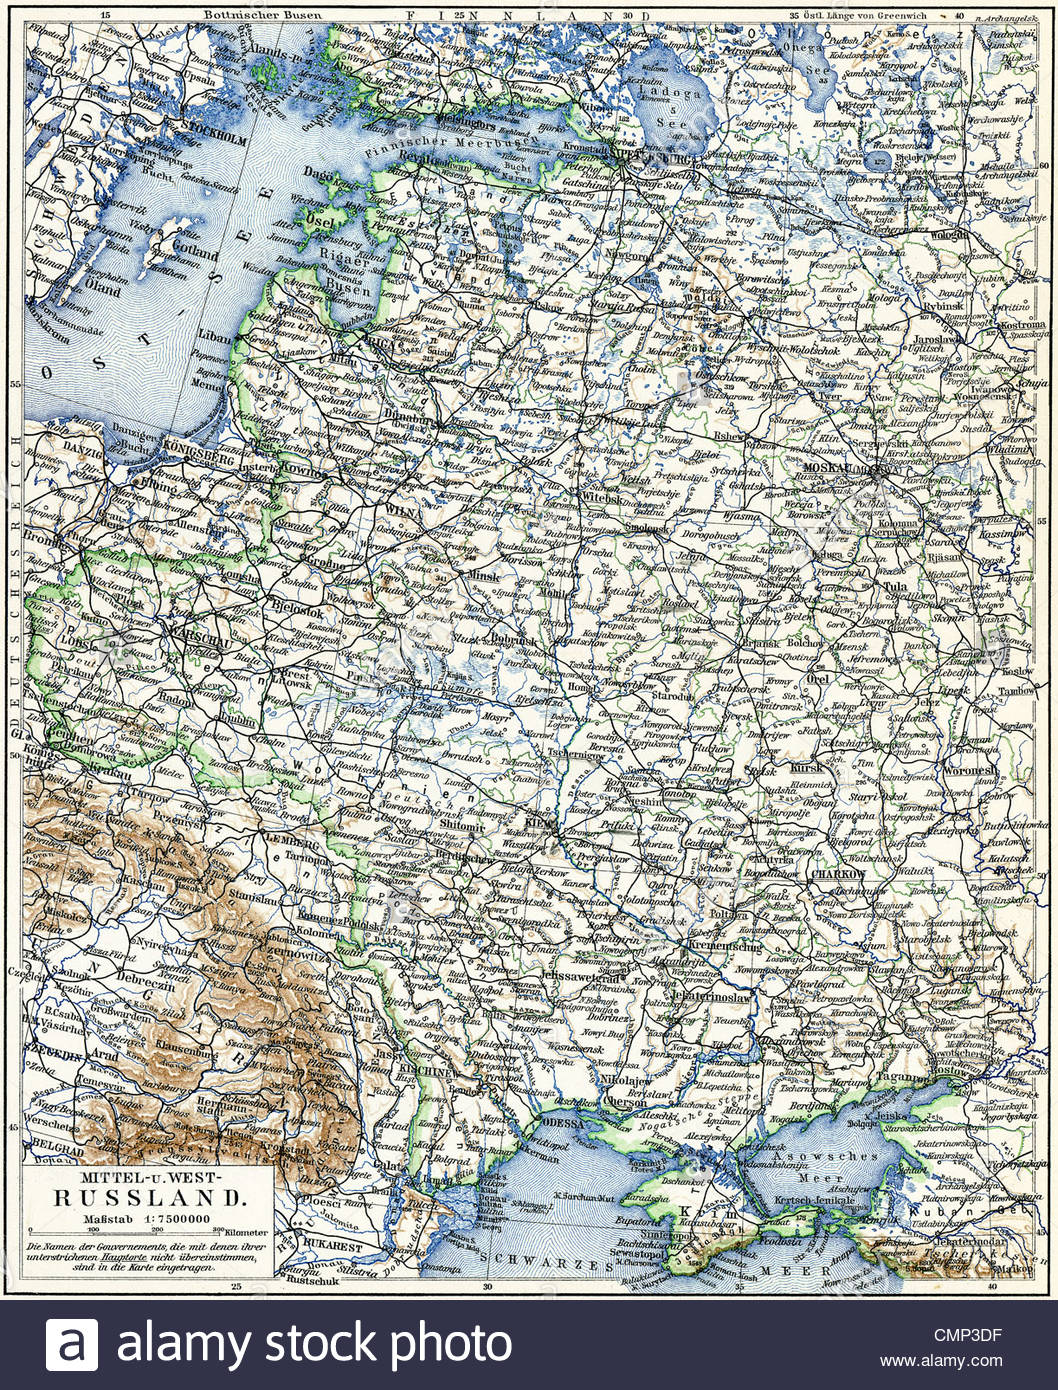 Map of the European part of Russian Empire Stock Photo: 47199531 - Alamy